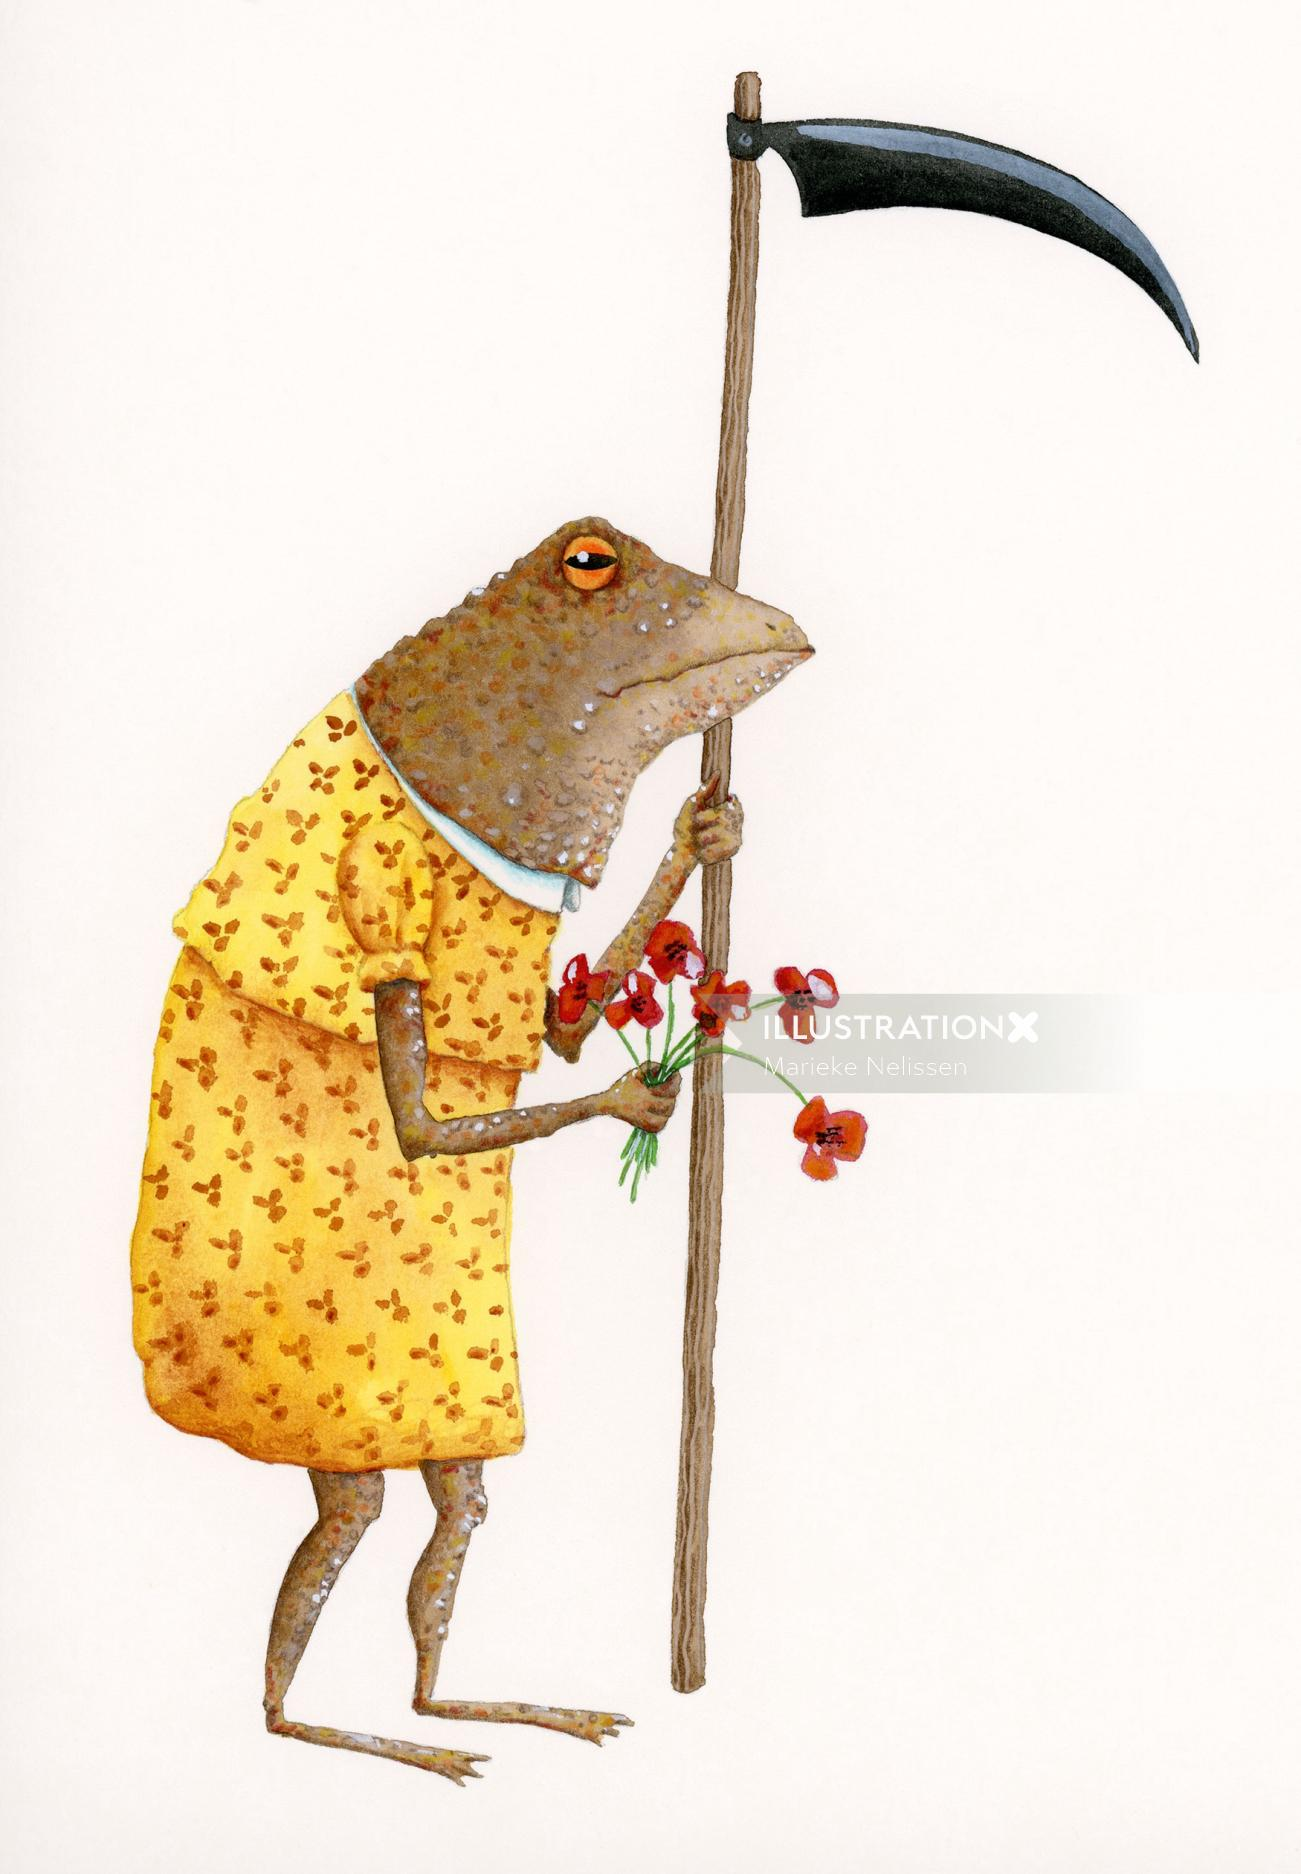 Toad holding a scythe and flowers